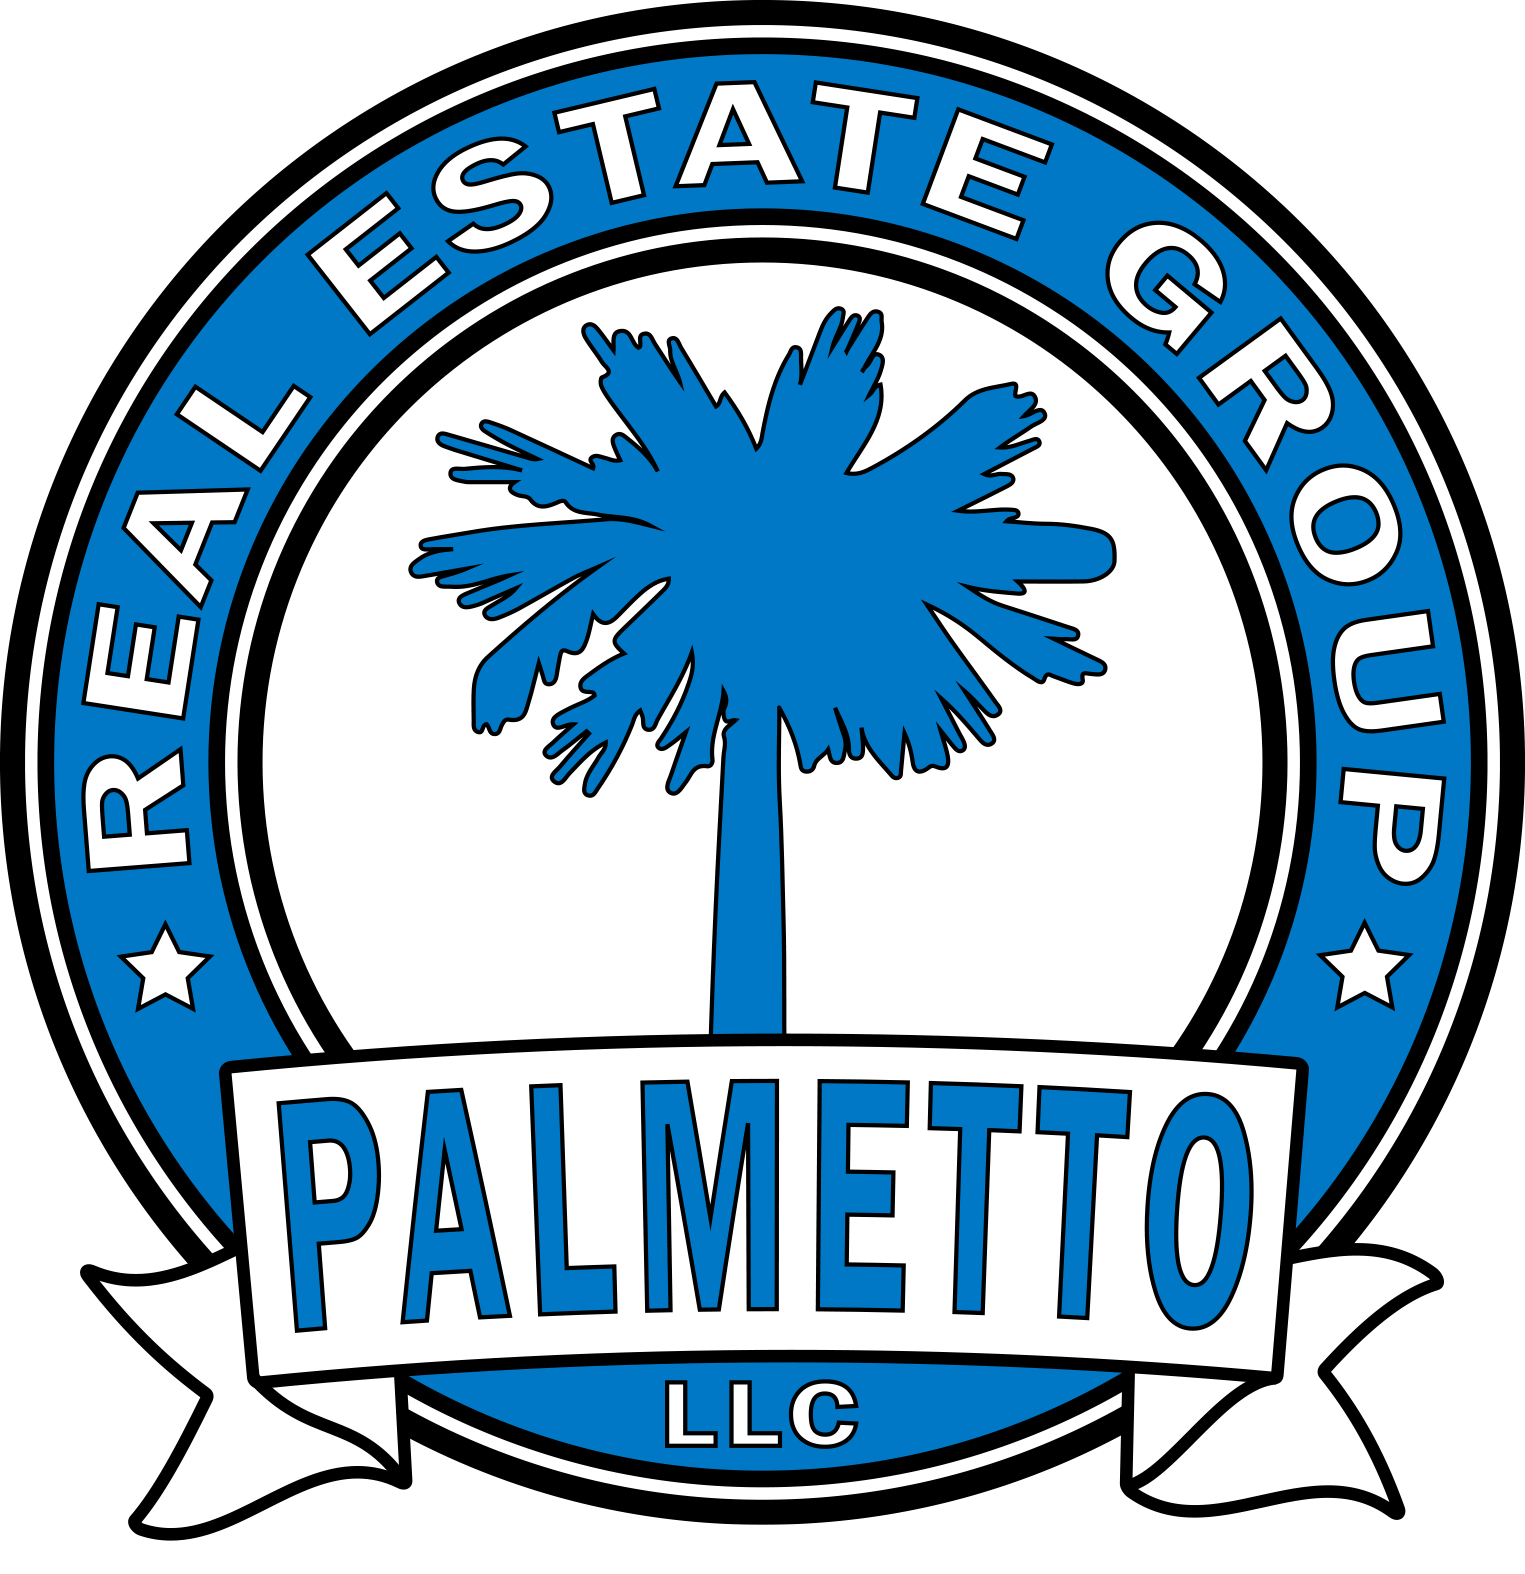 Palmetto Real Estate Group LLC